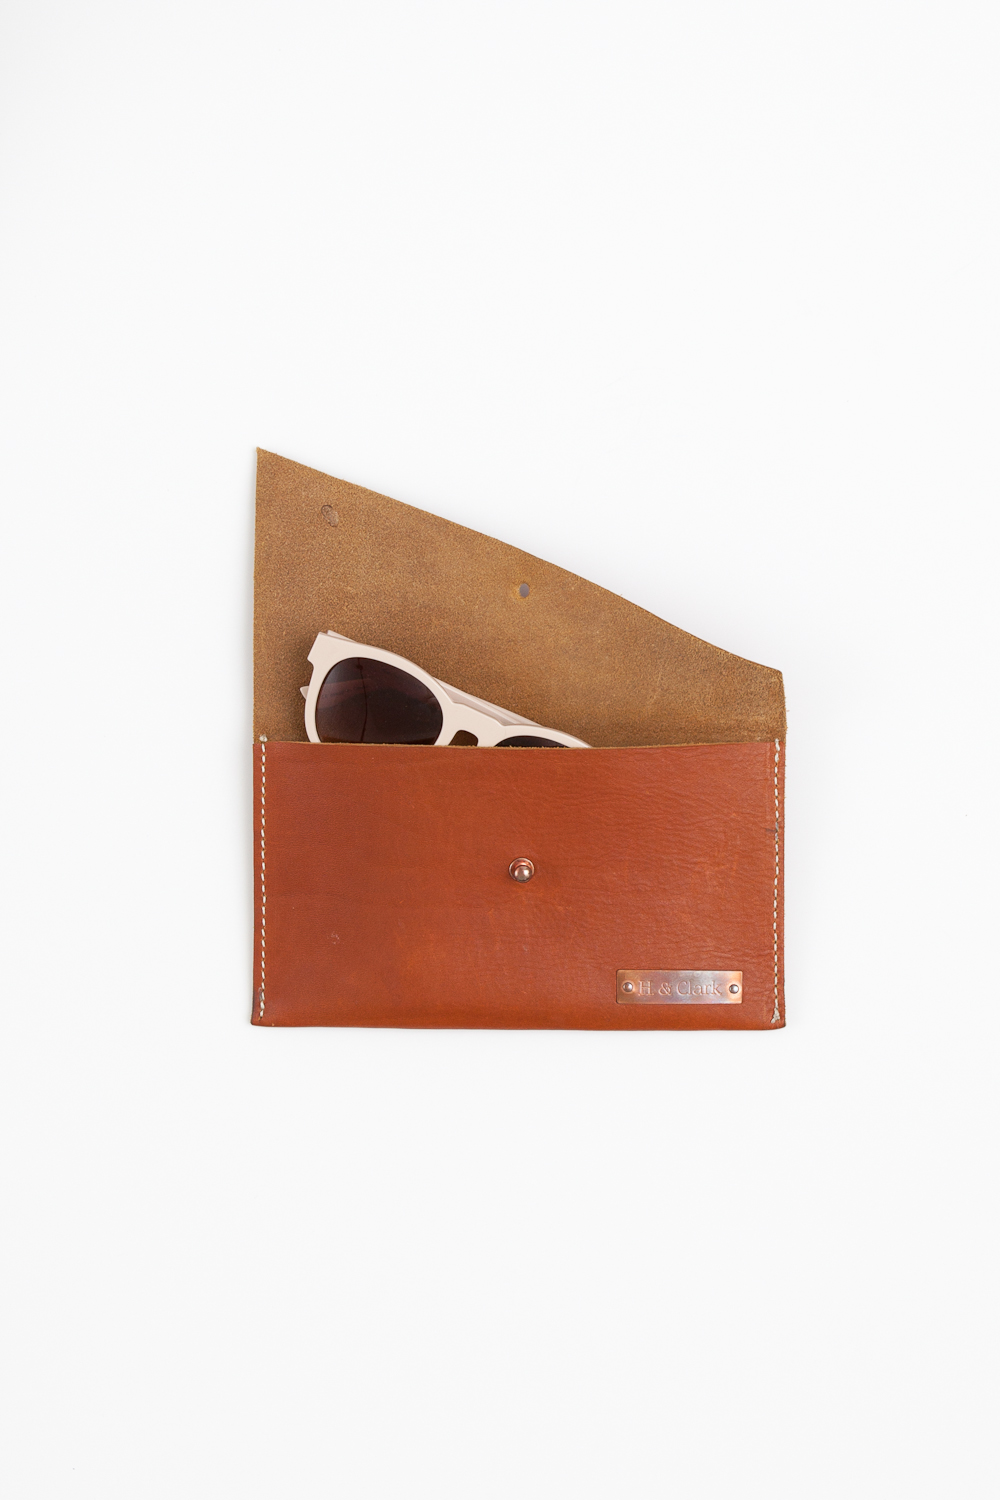 sunglasses leather clutch